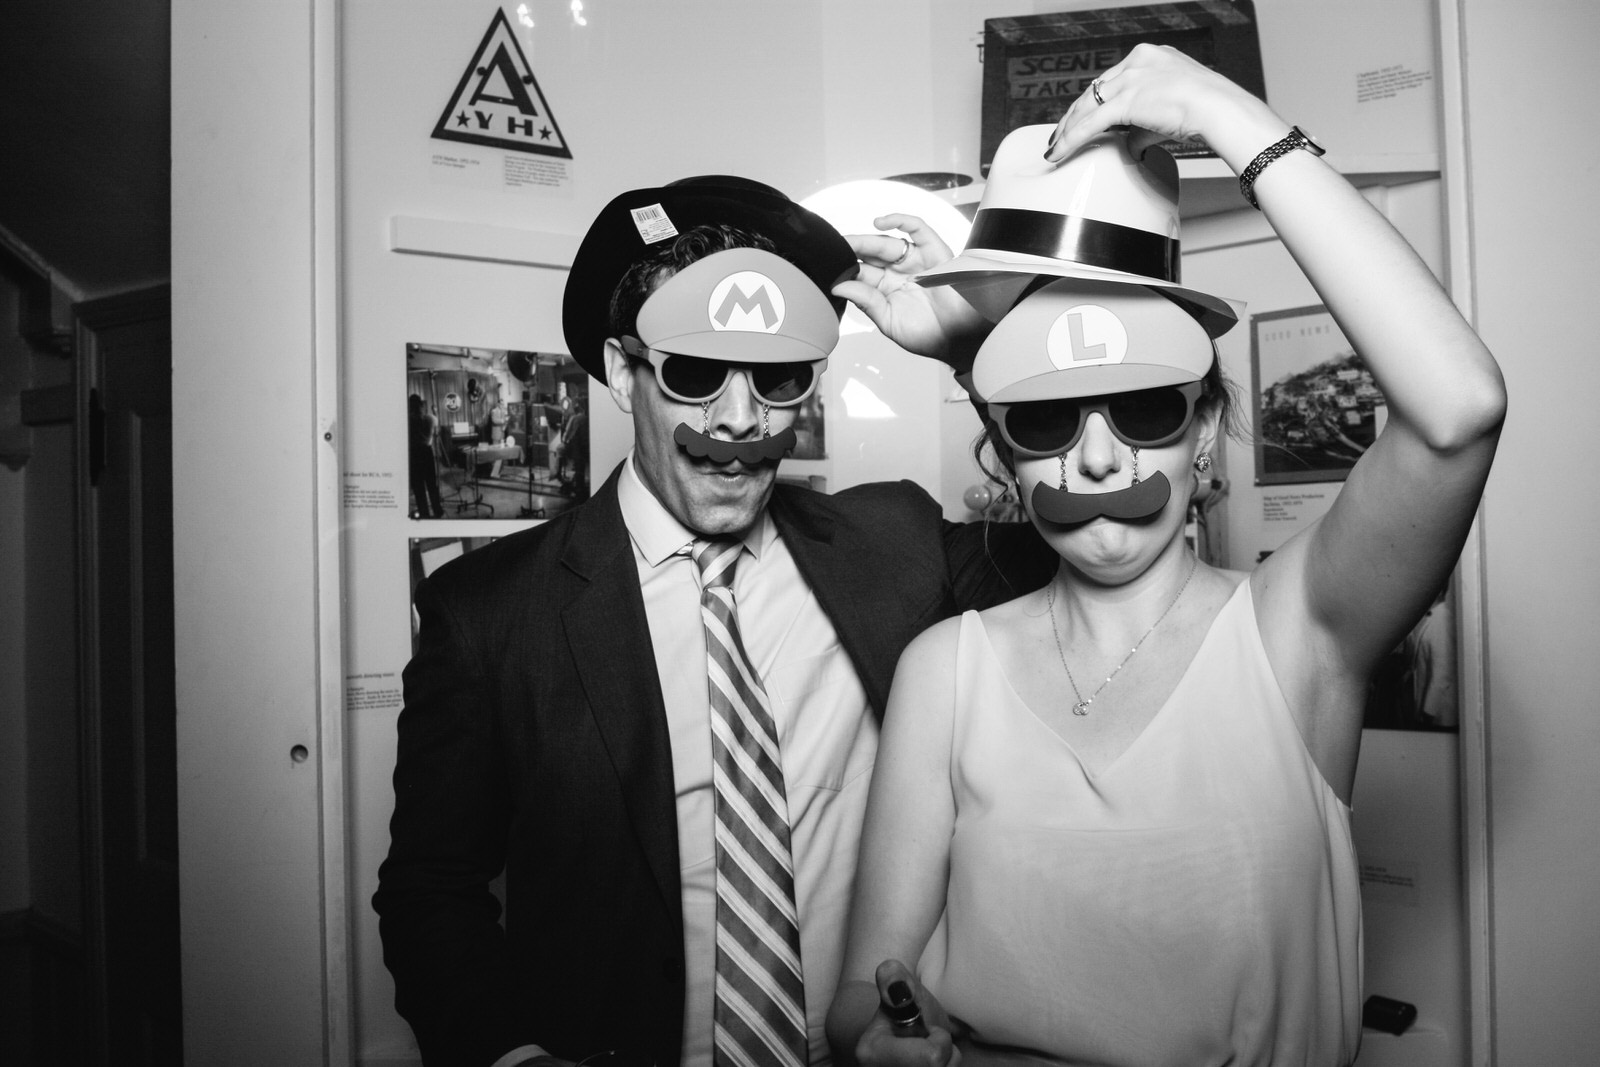 Richard-Donna-Wedding-Photo-Booth-9.jpg